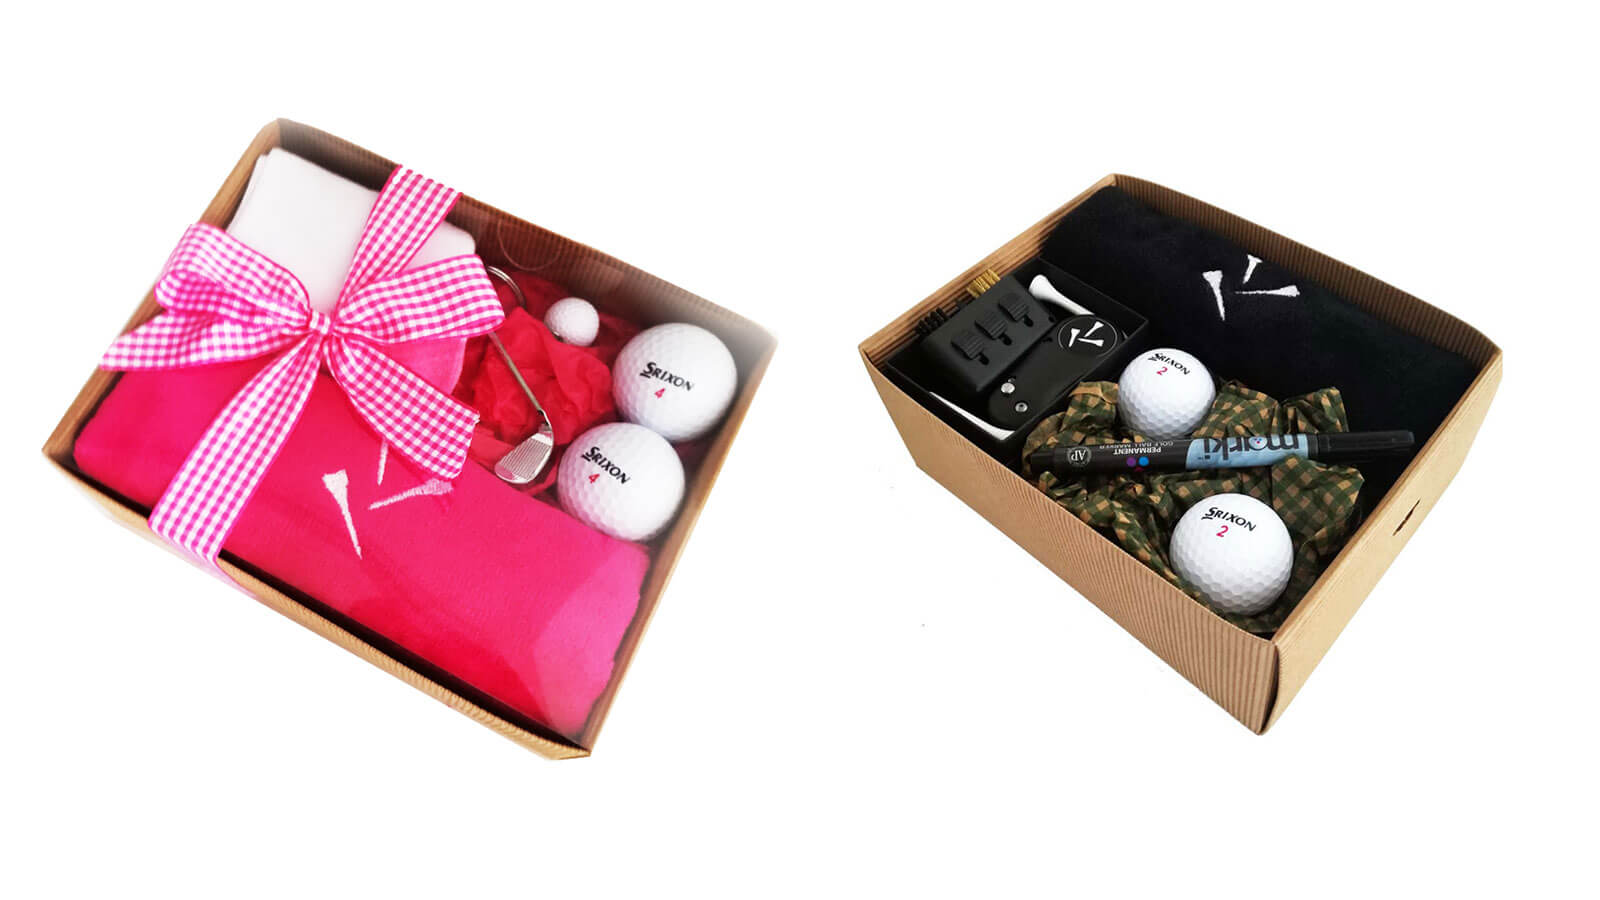 The Ultimate Golf Gift Guide 2018 (Continued) • golfscape